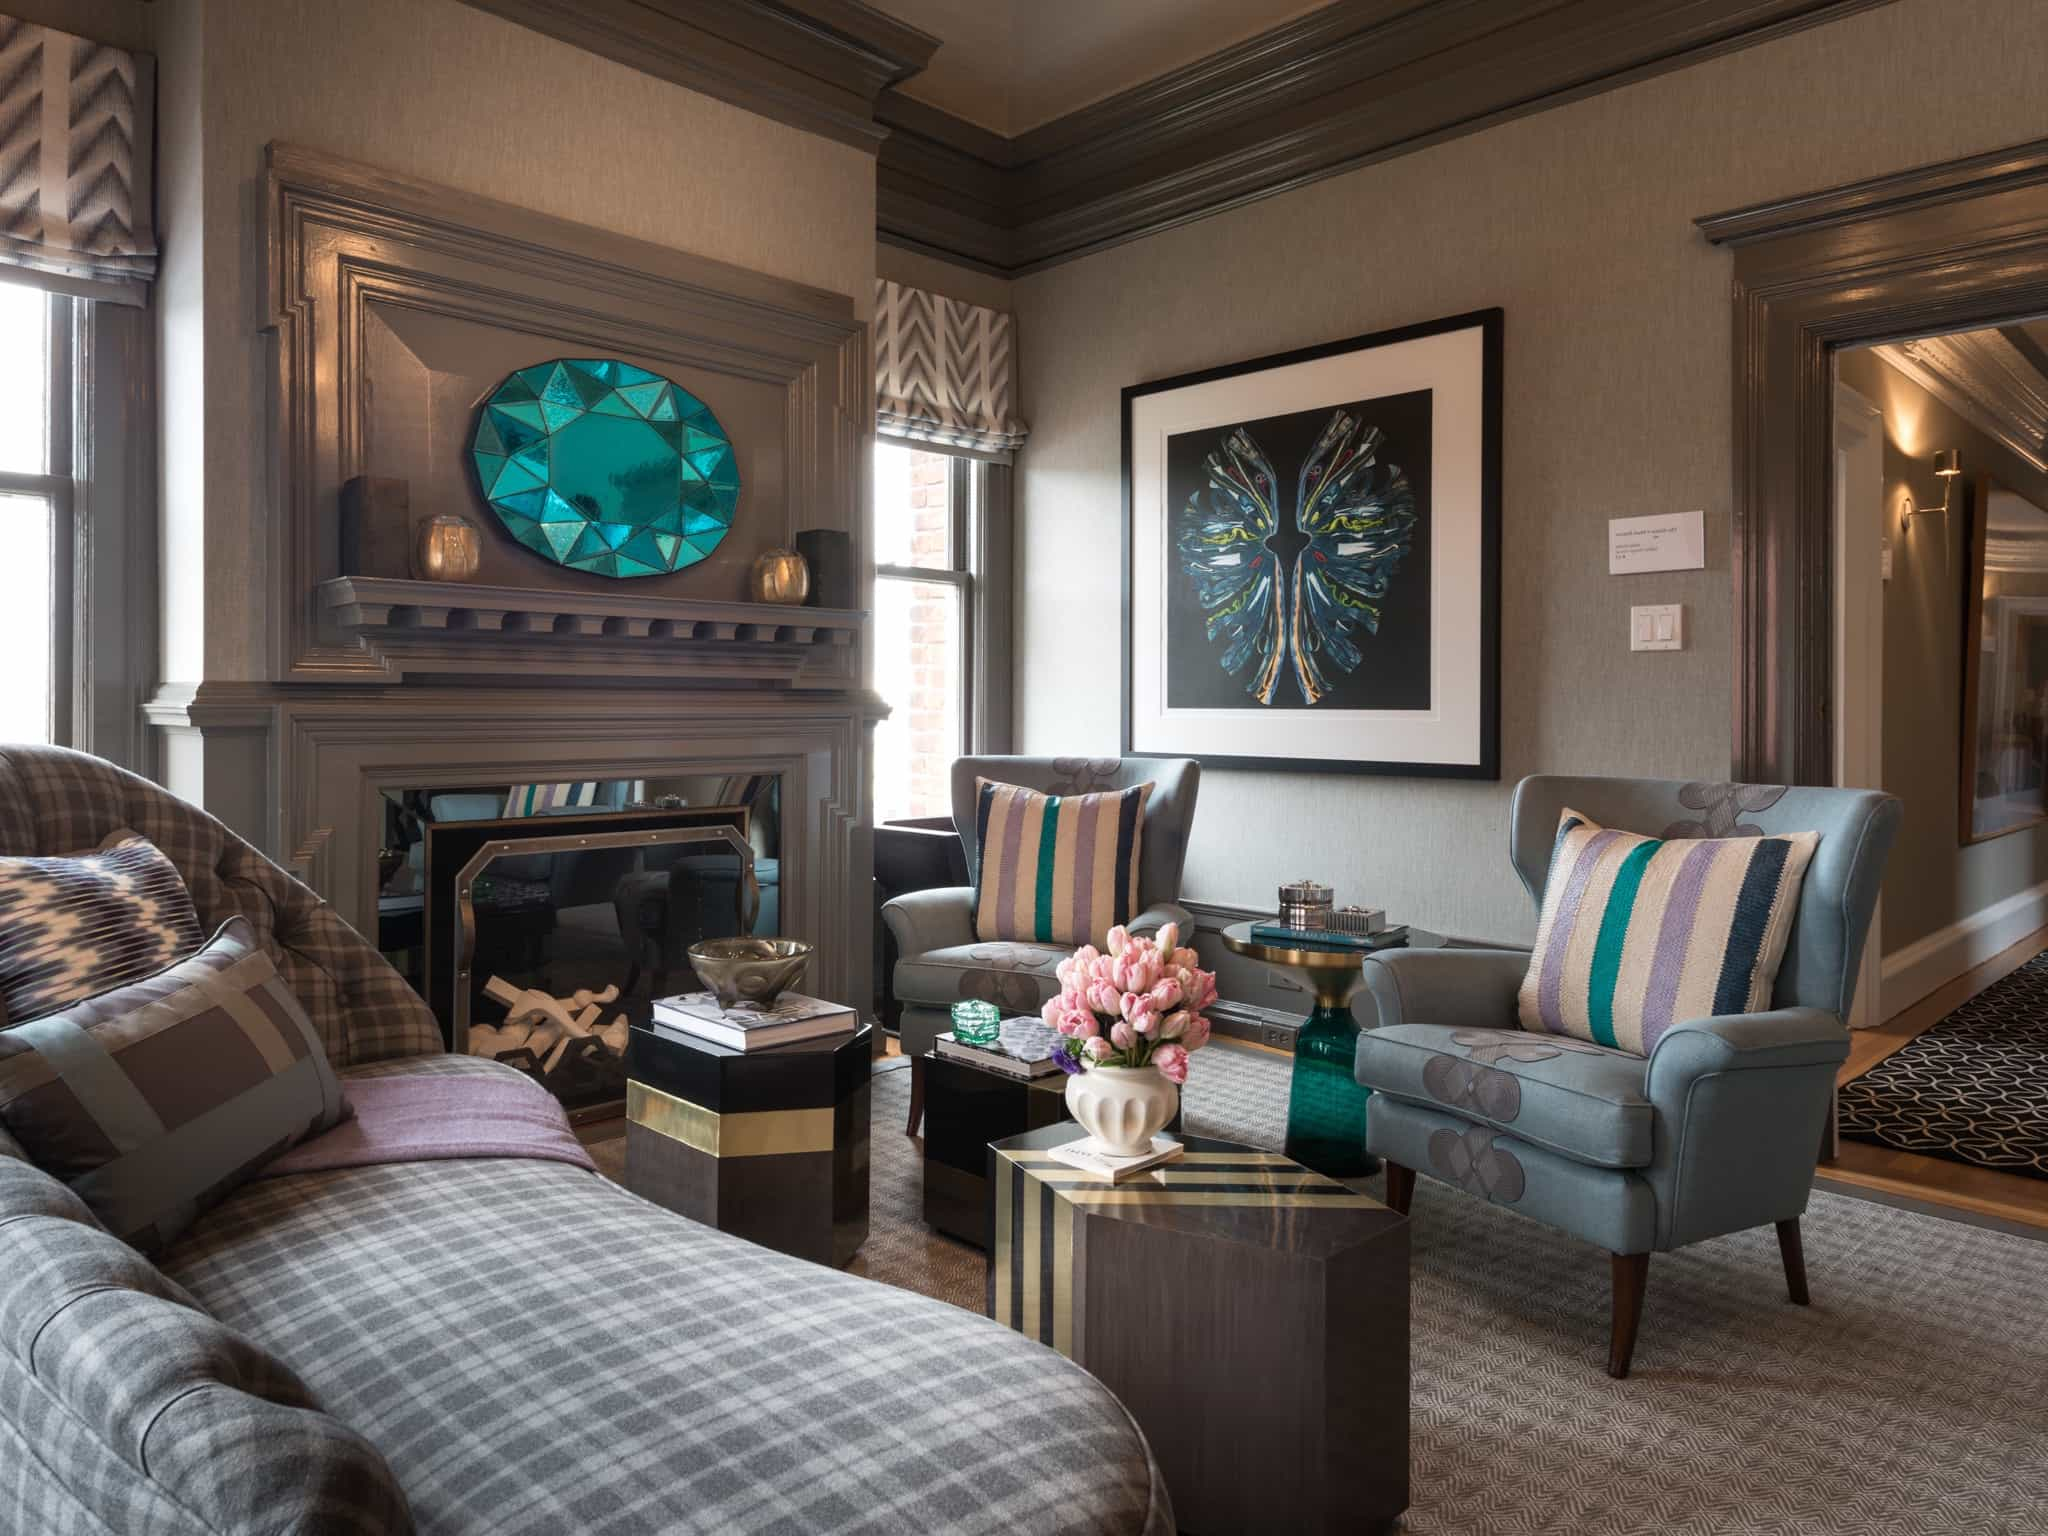 Art Deco Inspired Living Room With Turquoise Accents